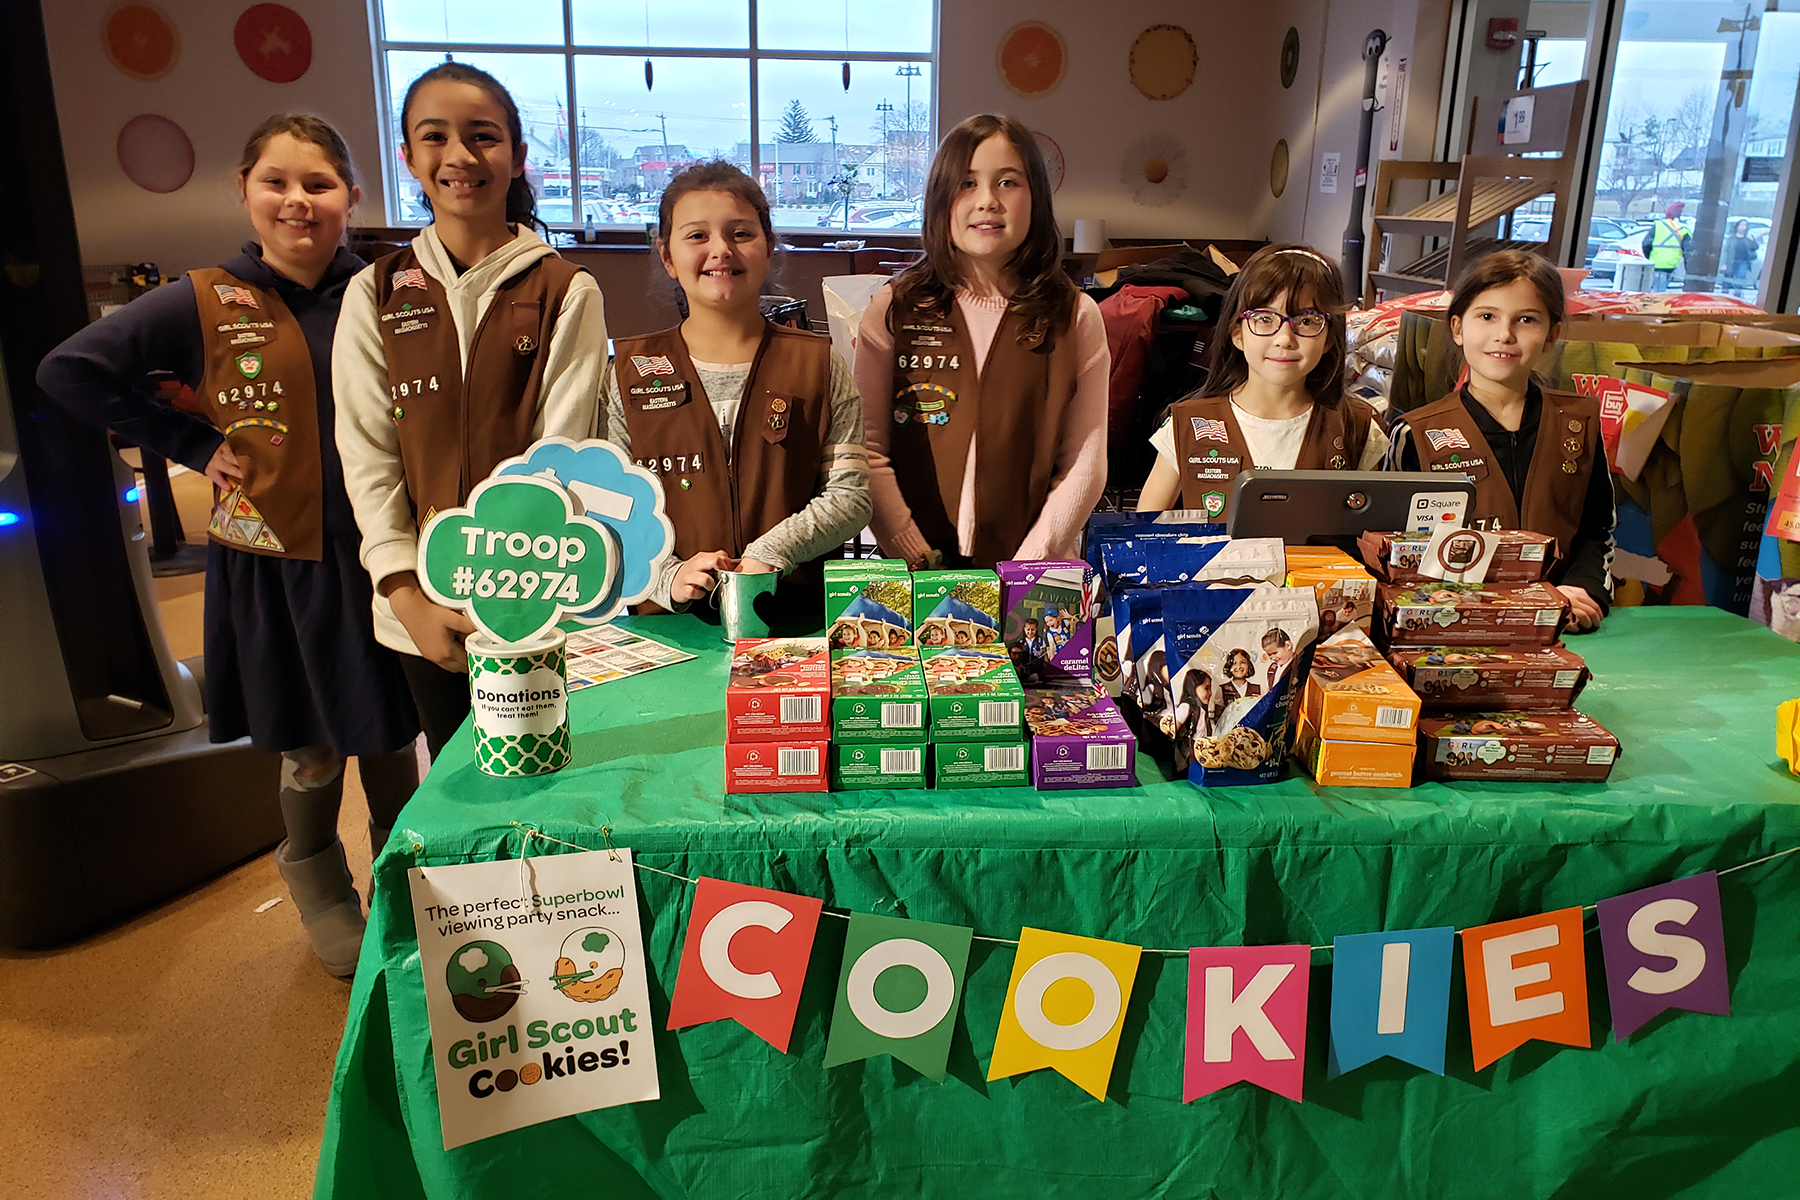 troop 62974 cookie booth